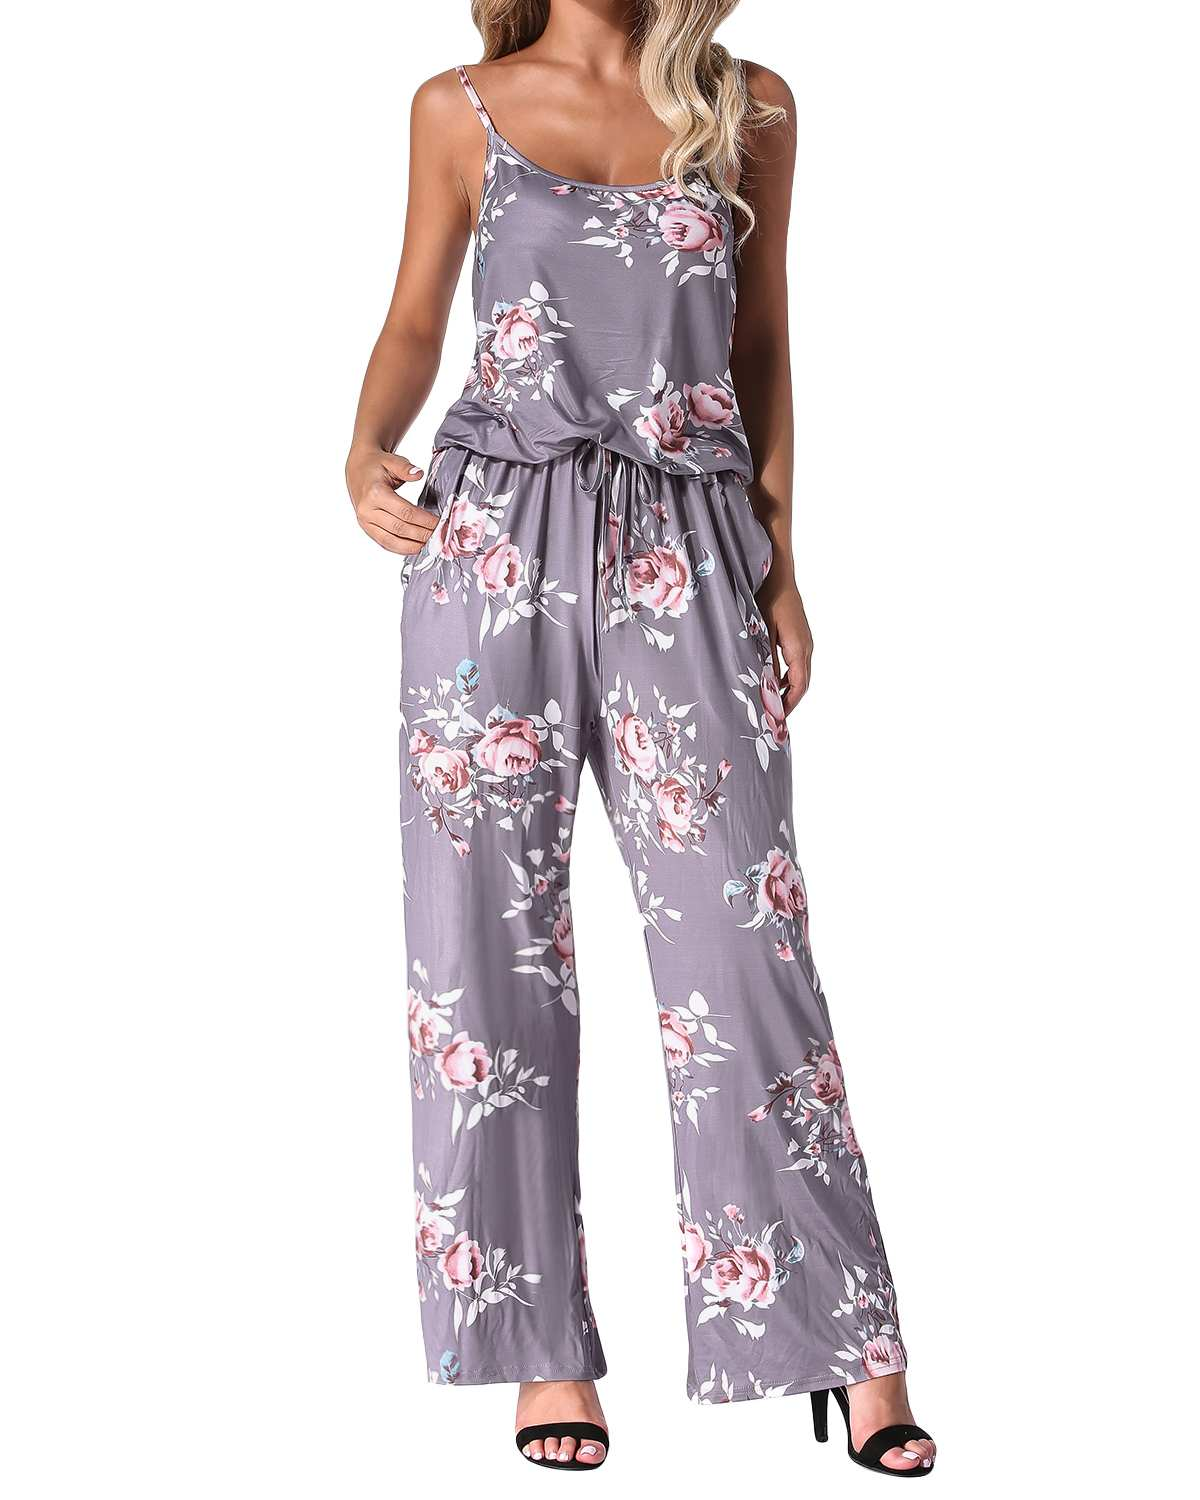 Women Floral Print  Rompers Jumpsuits 2019 Summer Casual Straight Sexy Backless Long Wide Leg Pants Playsuits Pockets Bodysuits